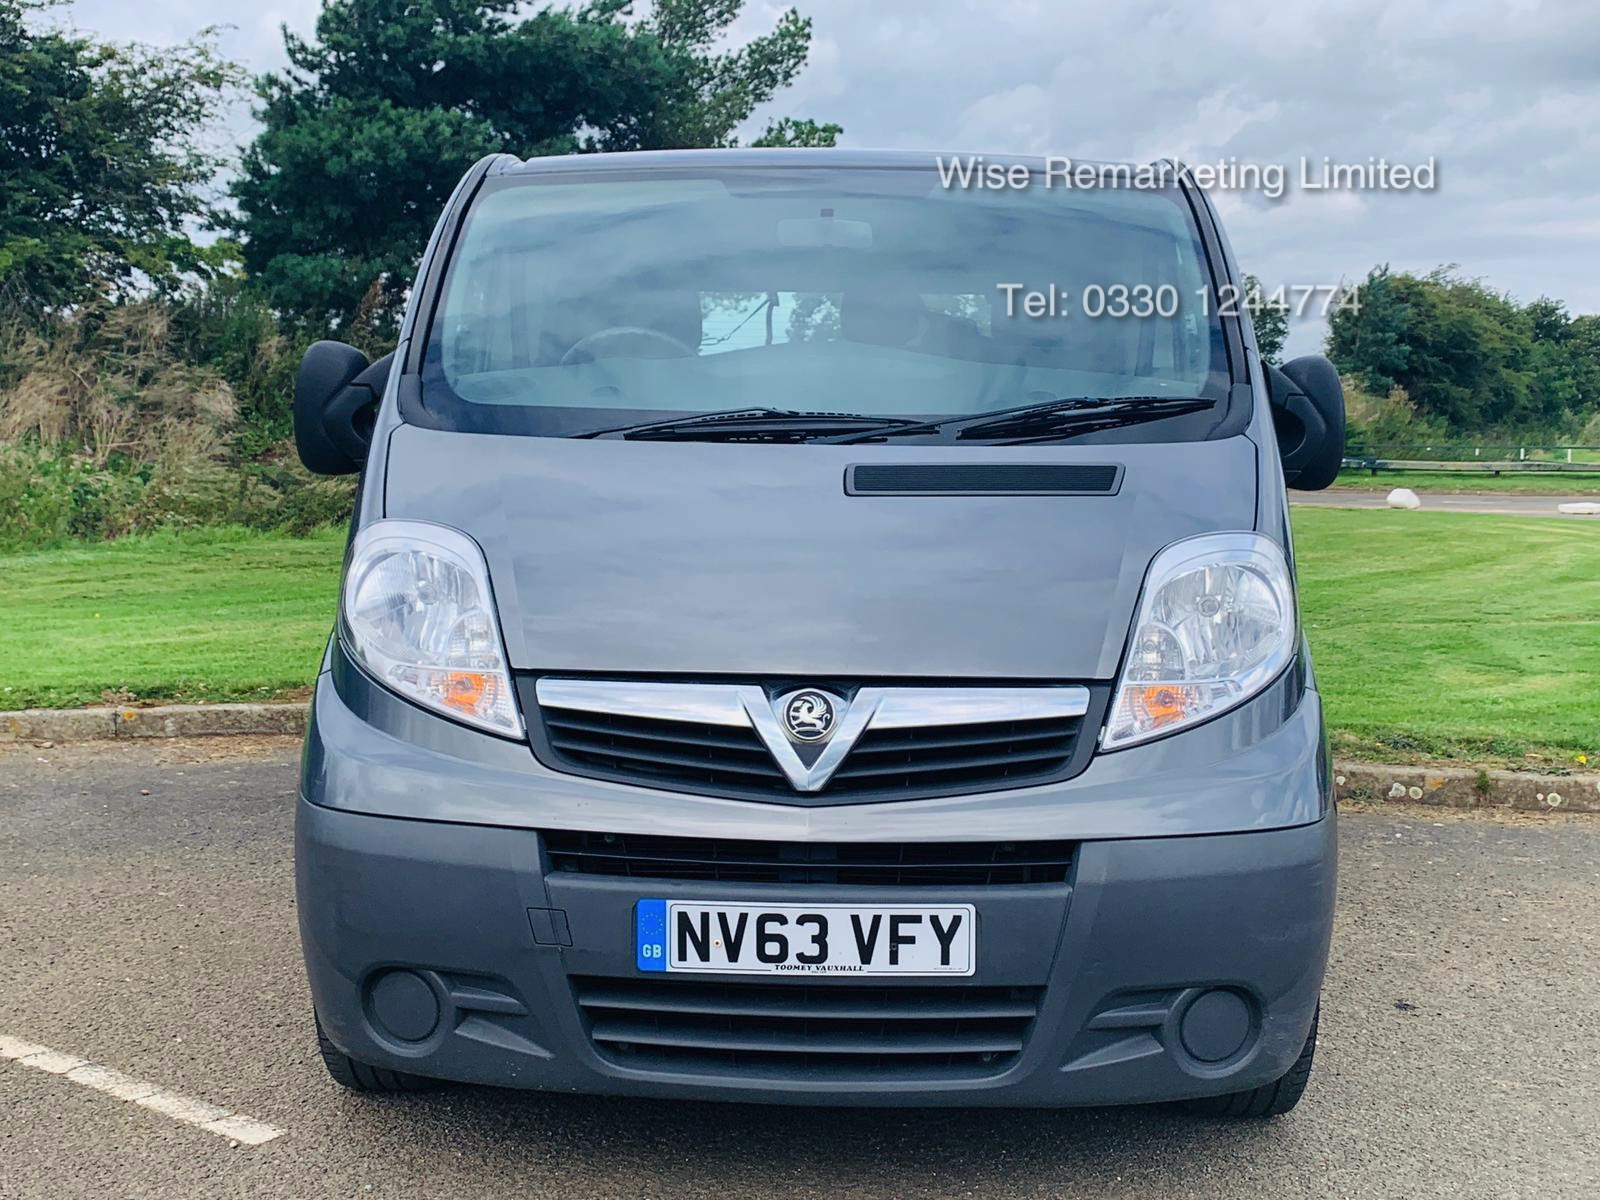 Vauxhall Vivaro 2.0 CDTI 2900 Minibus - 2014 Model - Wheel Chair Access -1 Owner From New -History - Image 7 of 21